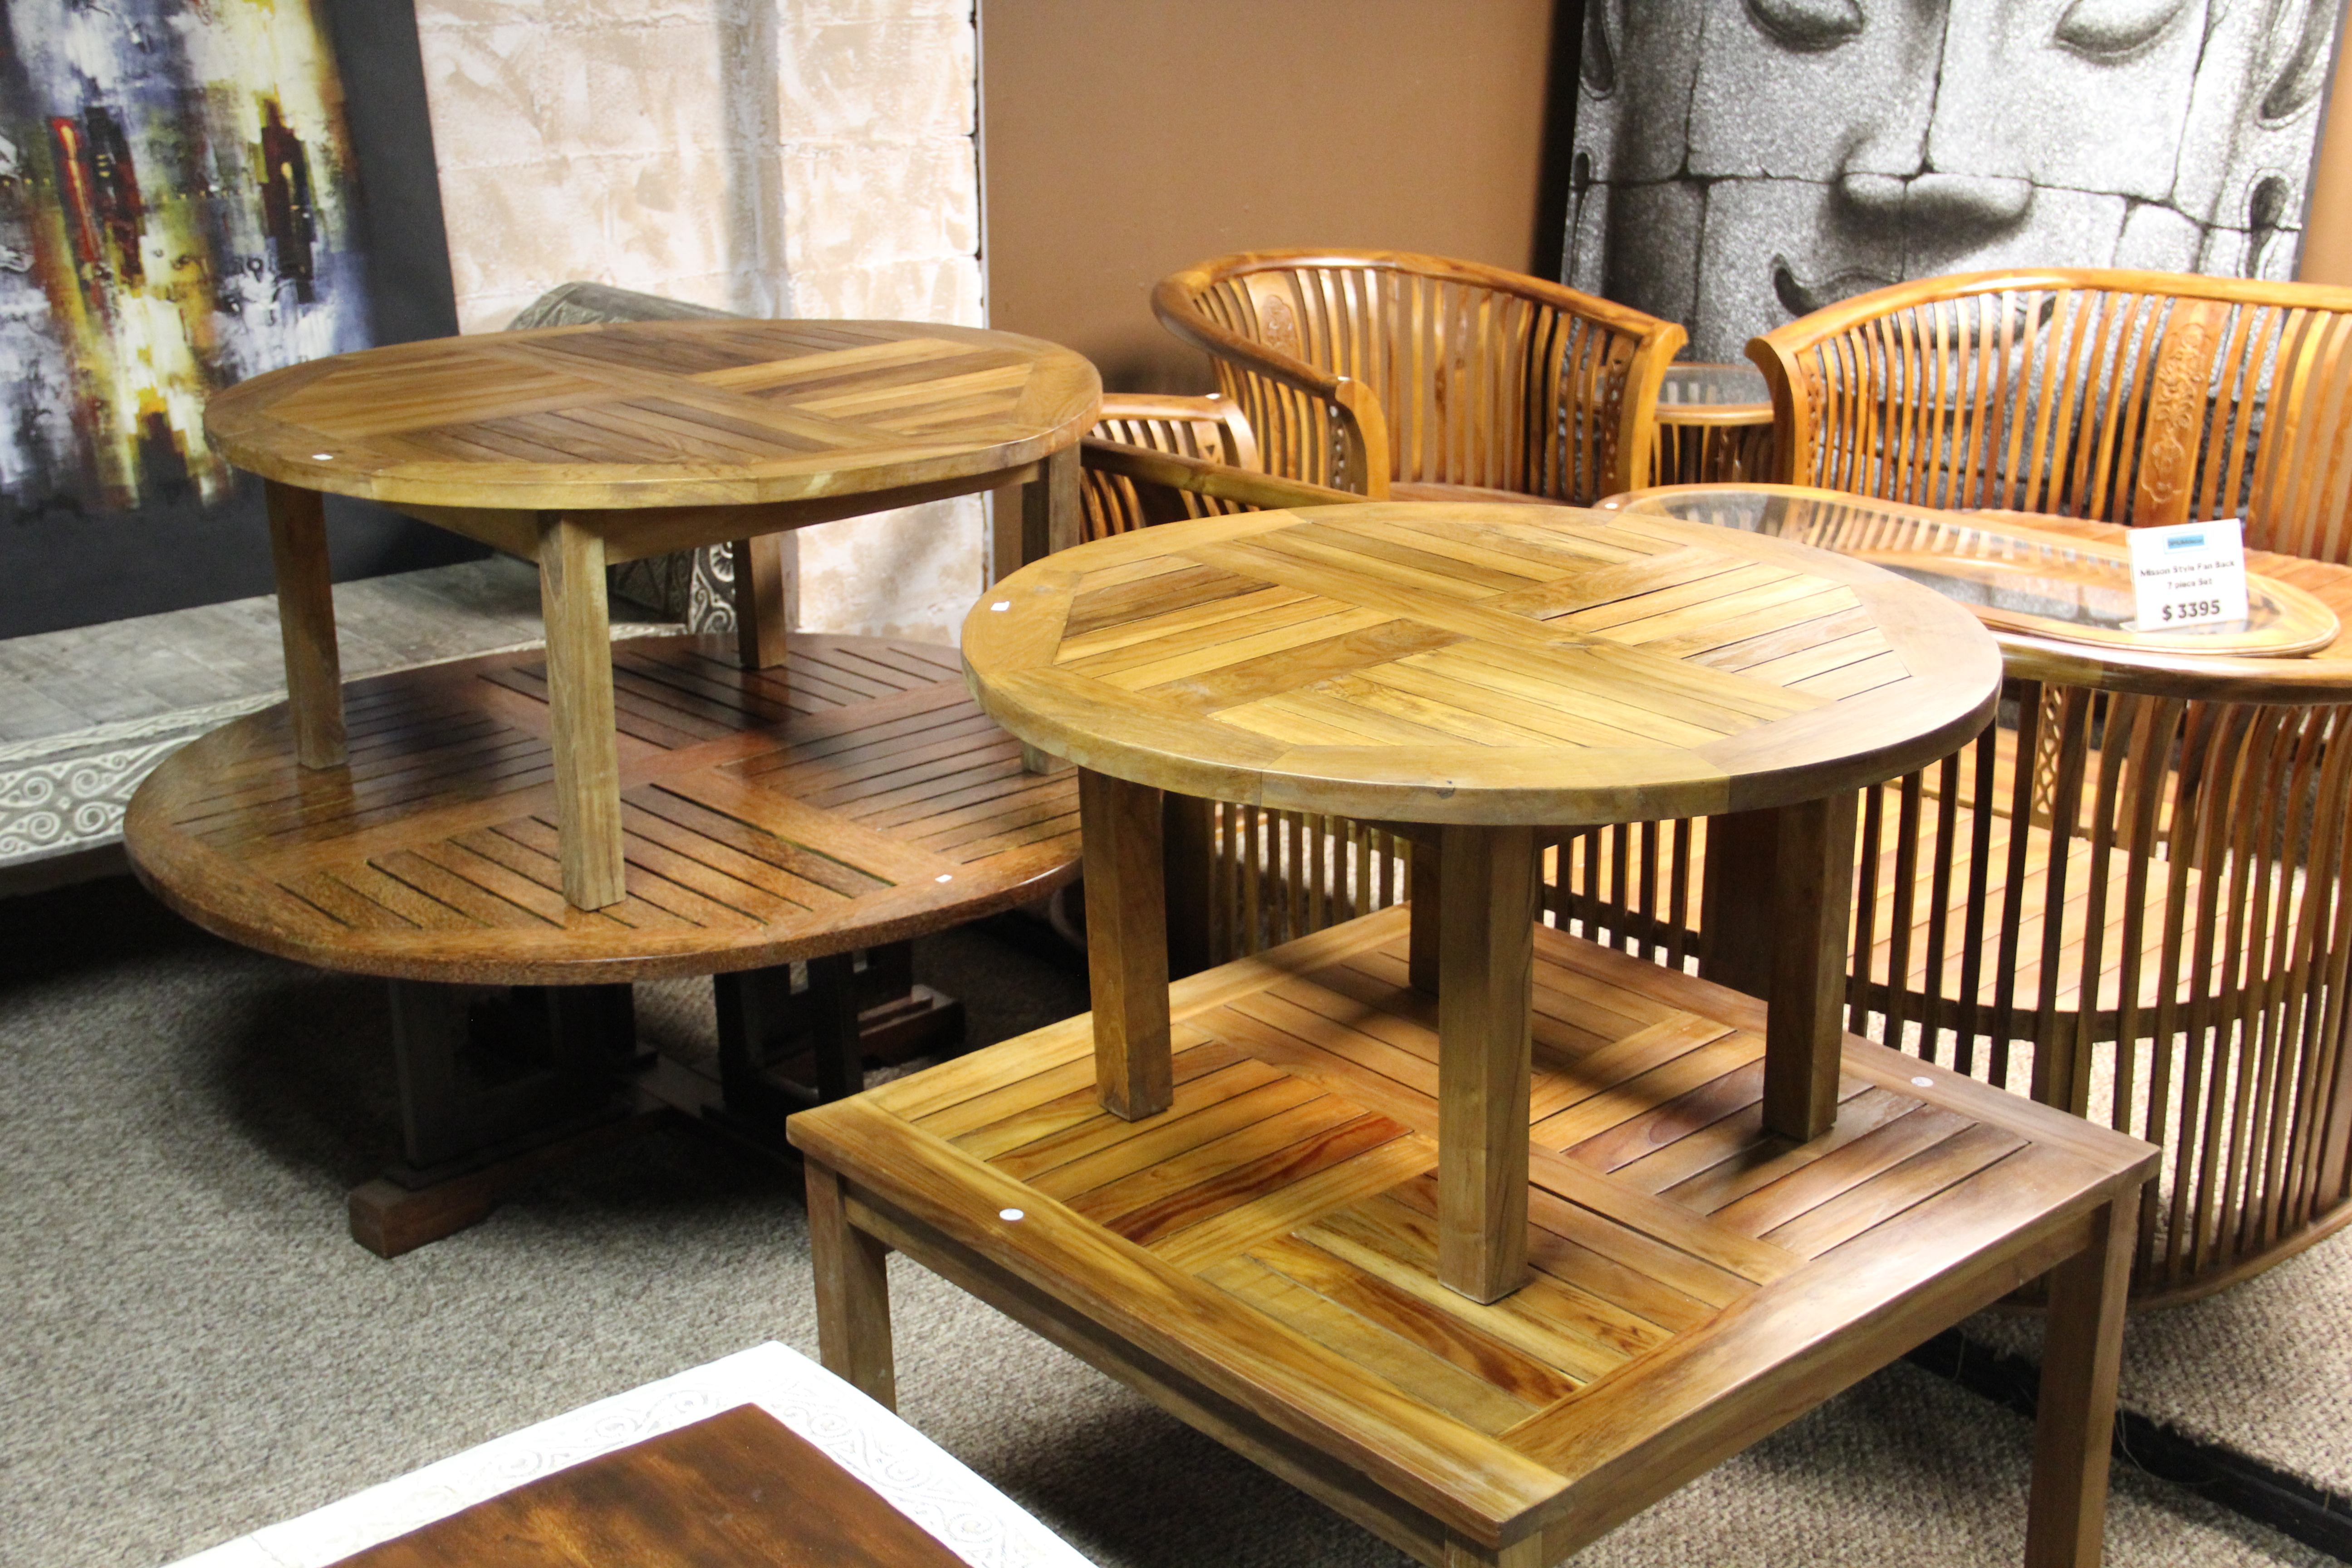 Coconut and Teak Coffee Tables